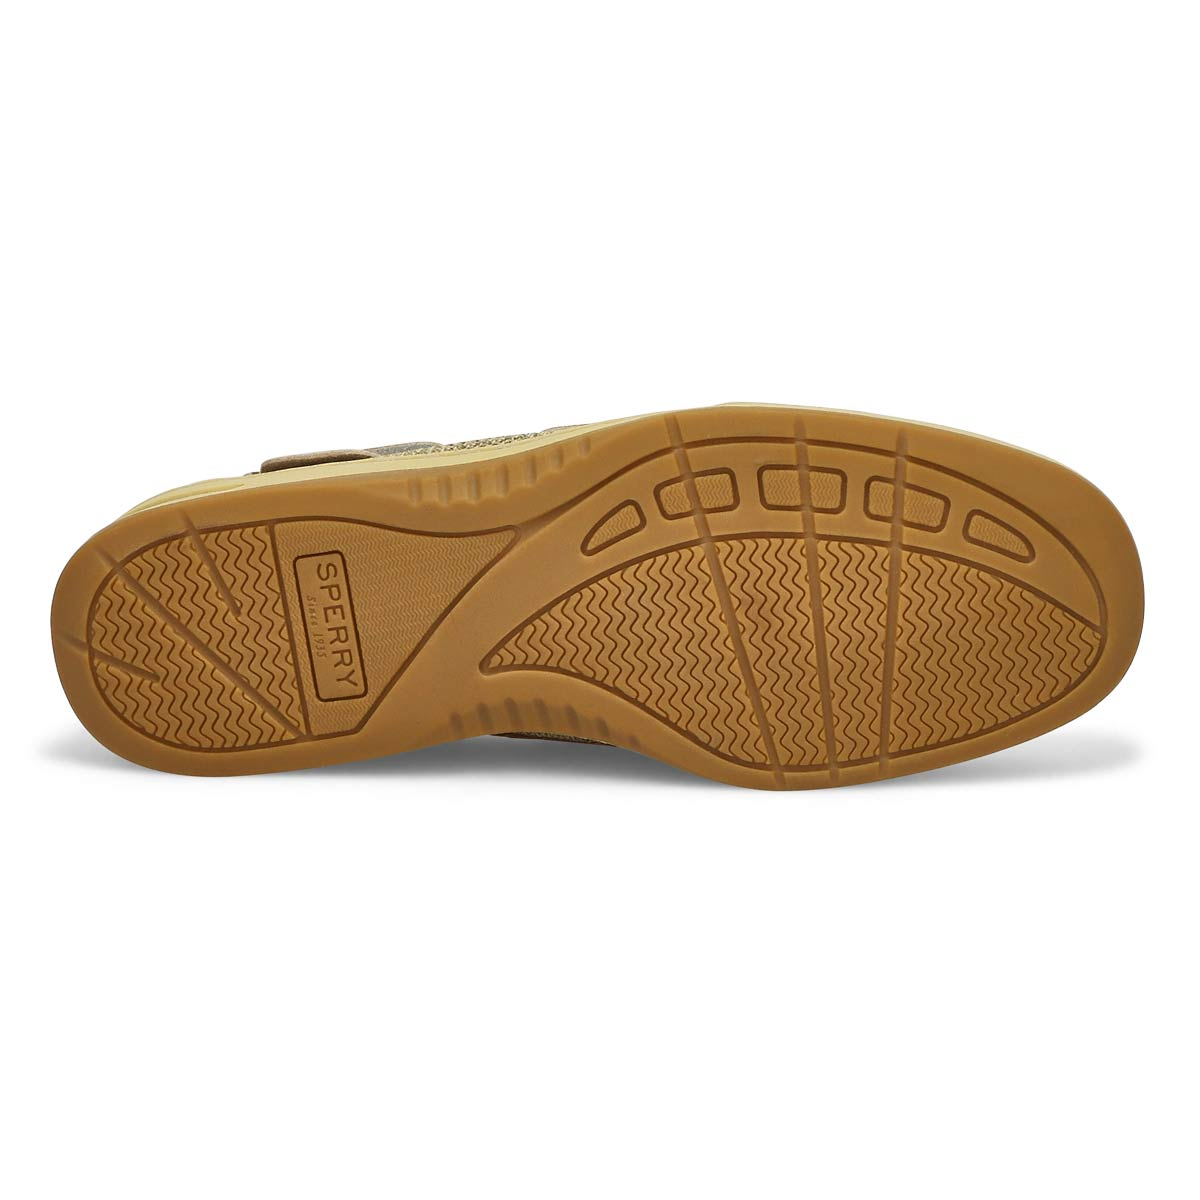 Lds Angelfish lin/oat boat shoe